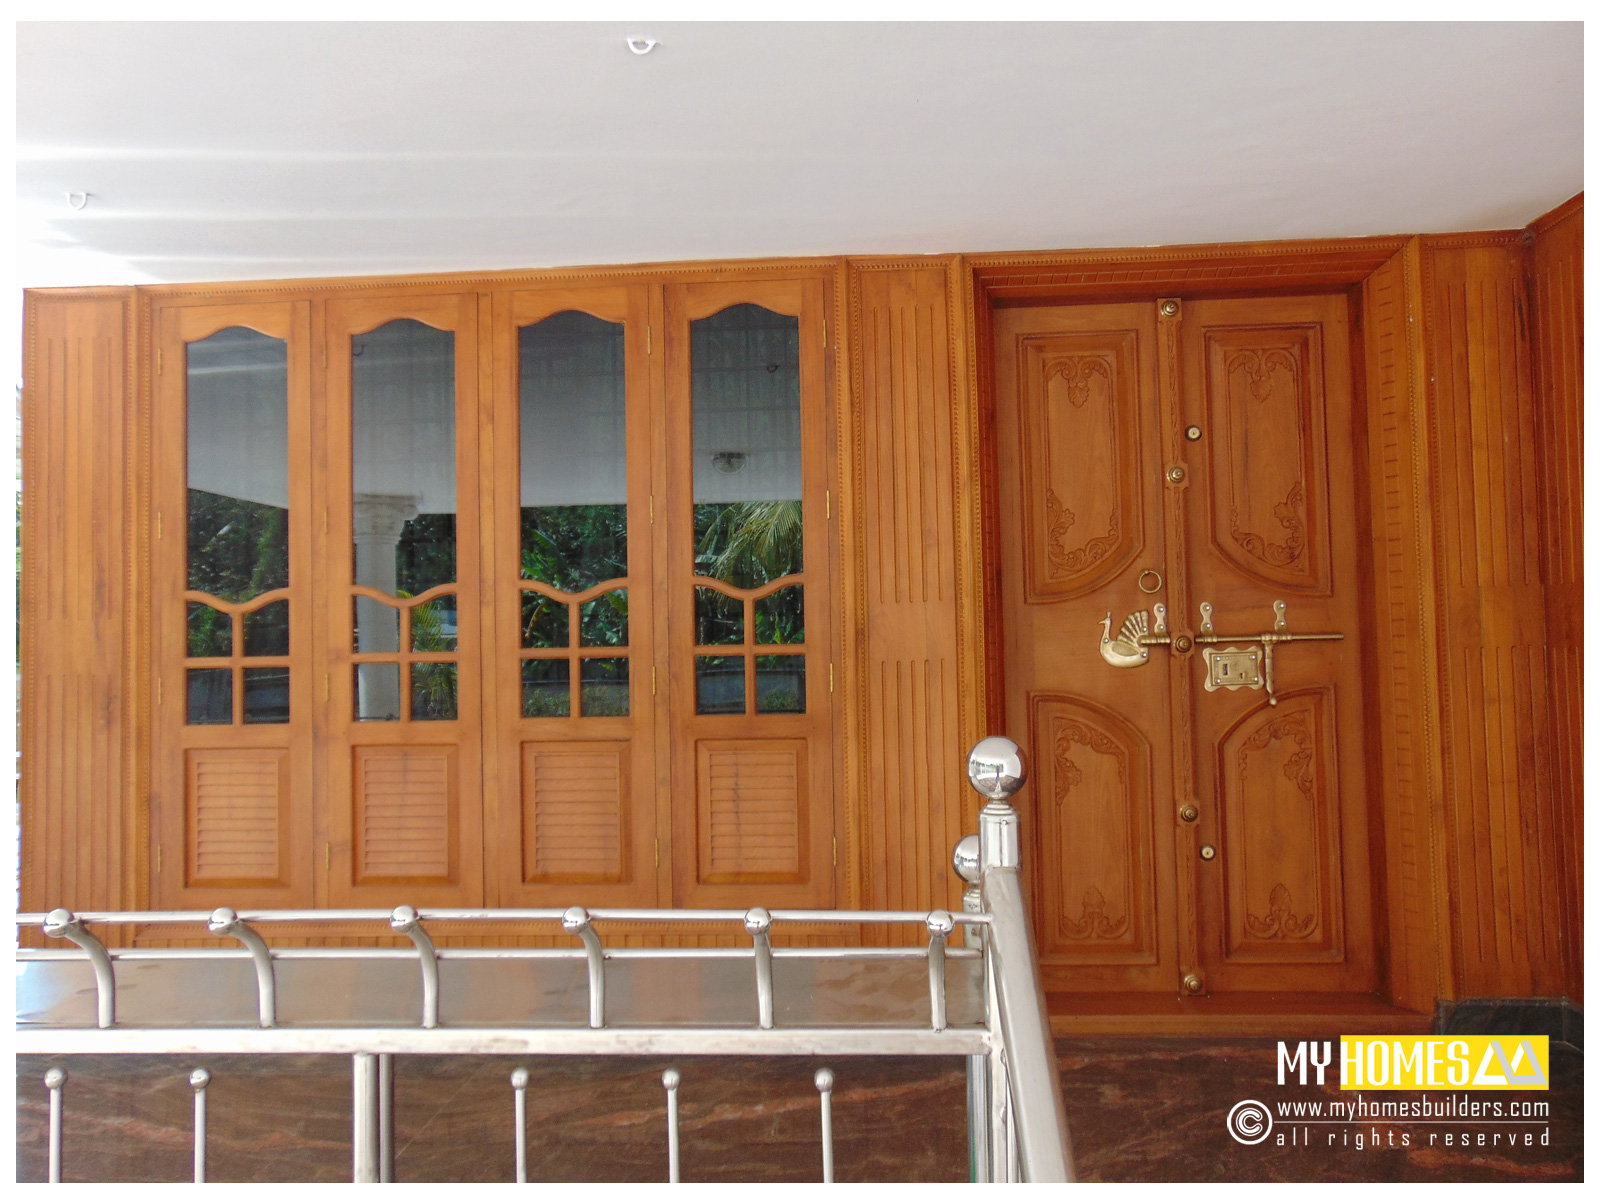 Single and double style door design kerala for house in india Front door grill designs india